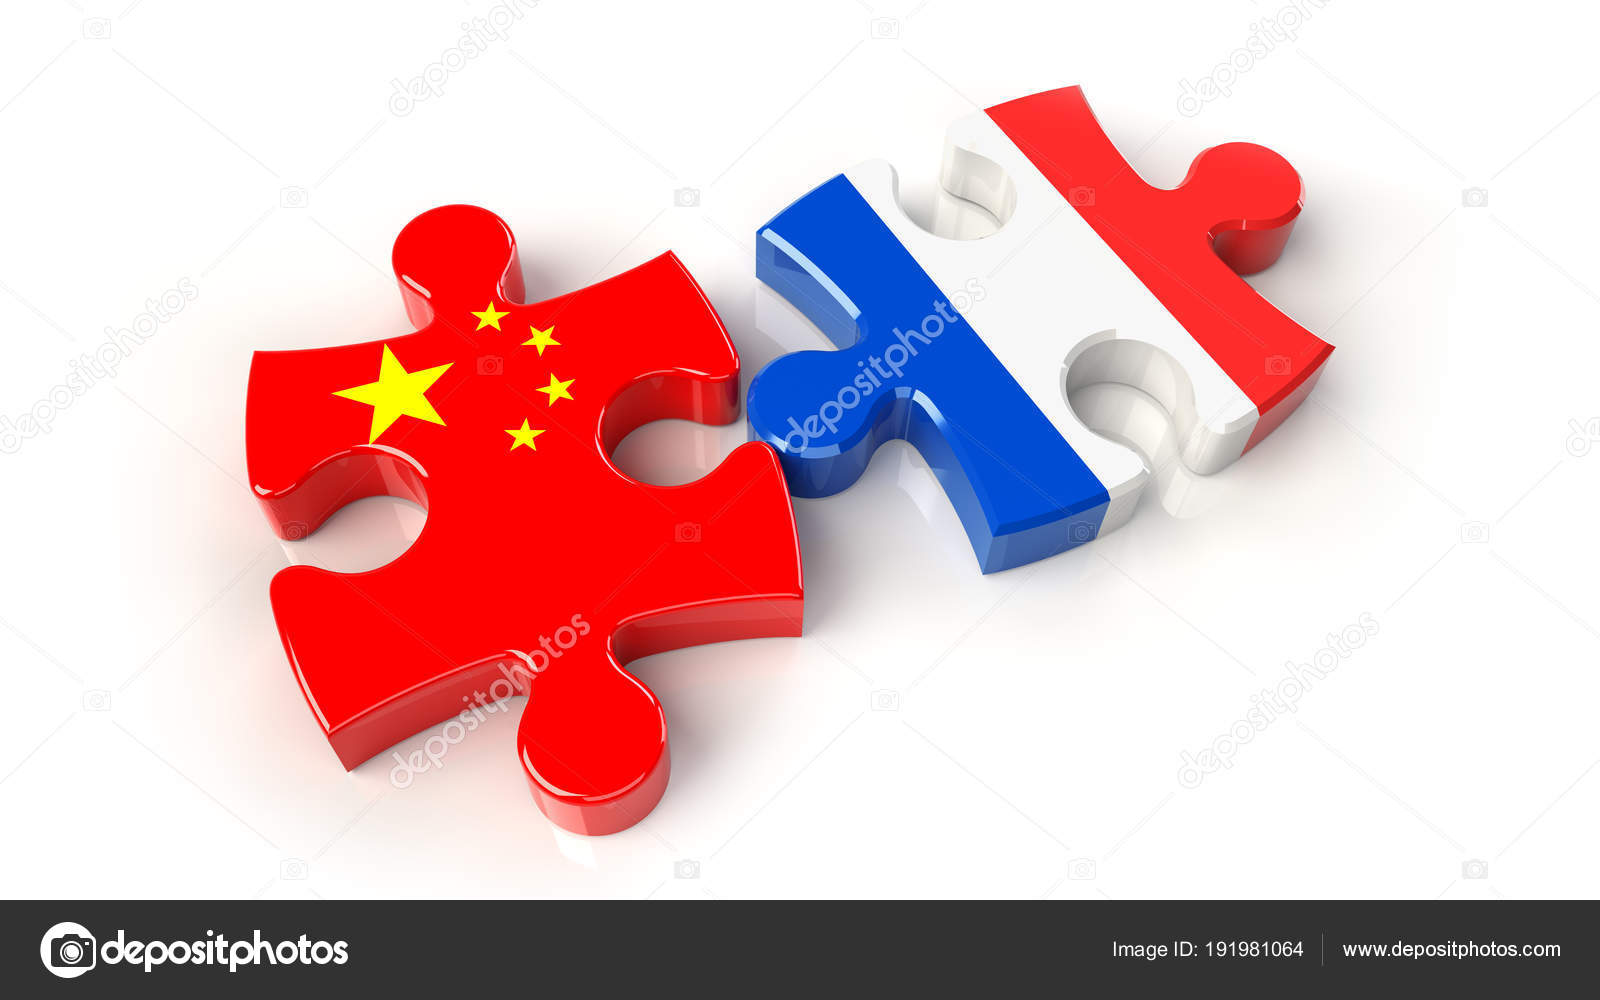 China And France Flags On Puzzle Pieces Political Relationship Concept 3D Rendering Photo By Klenger